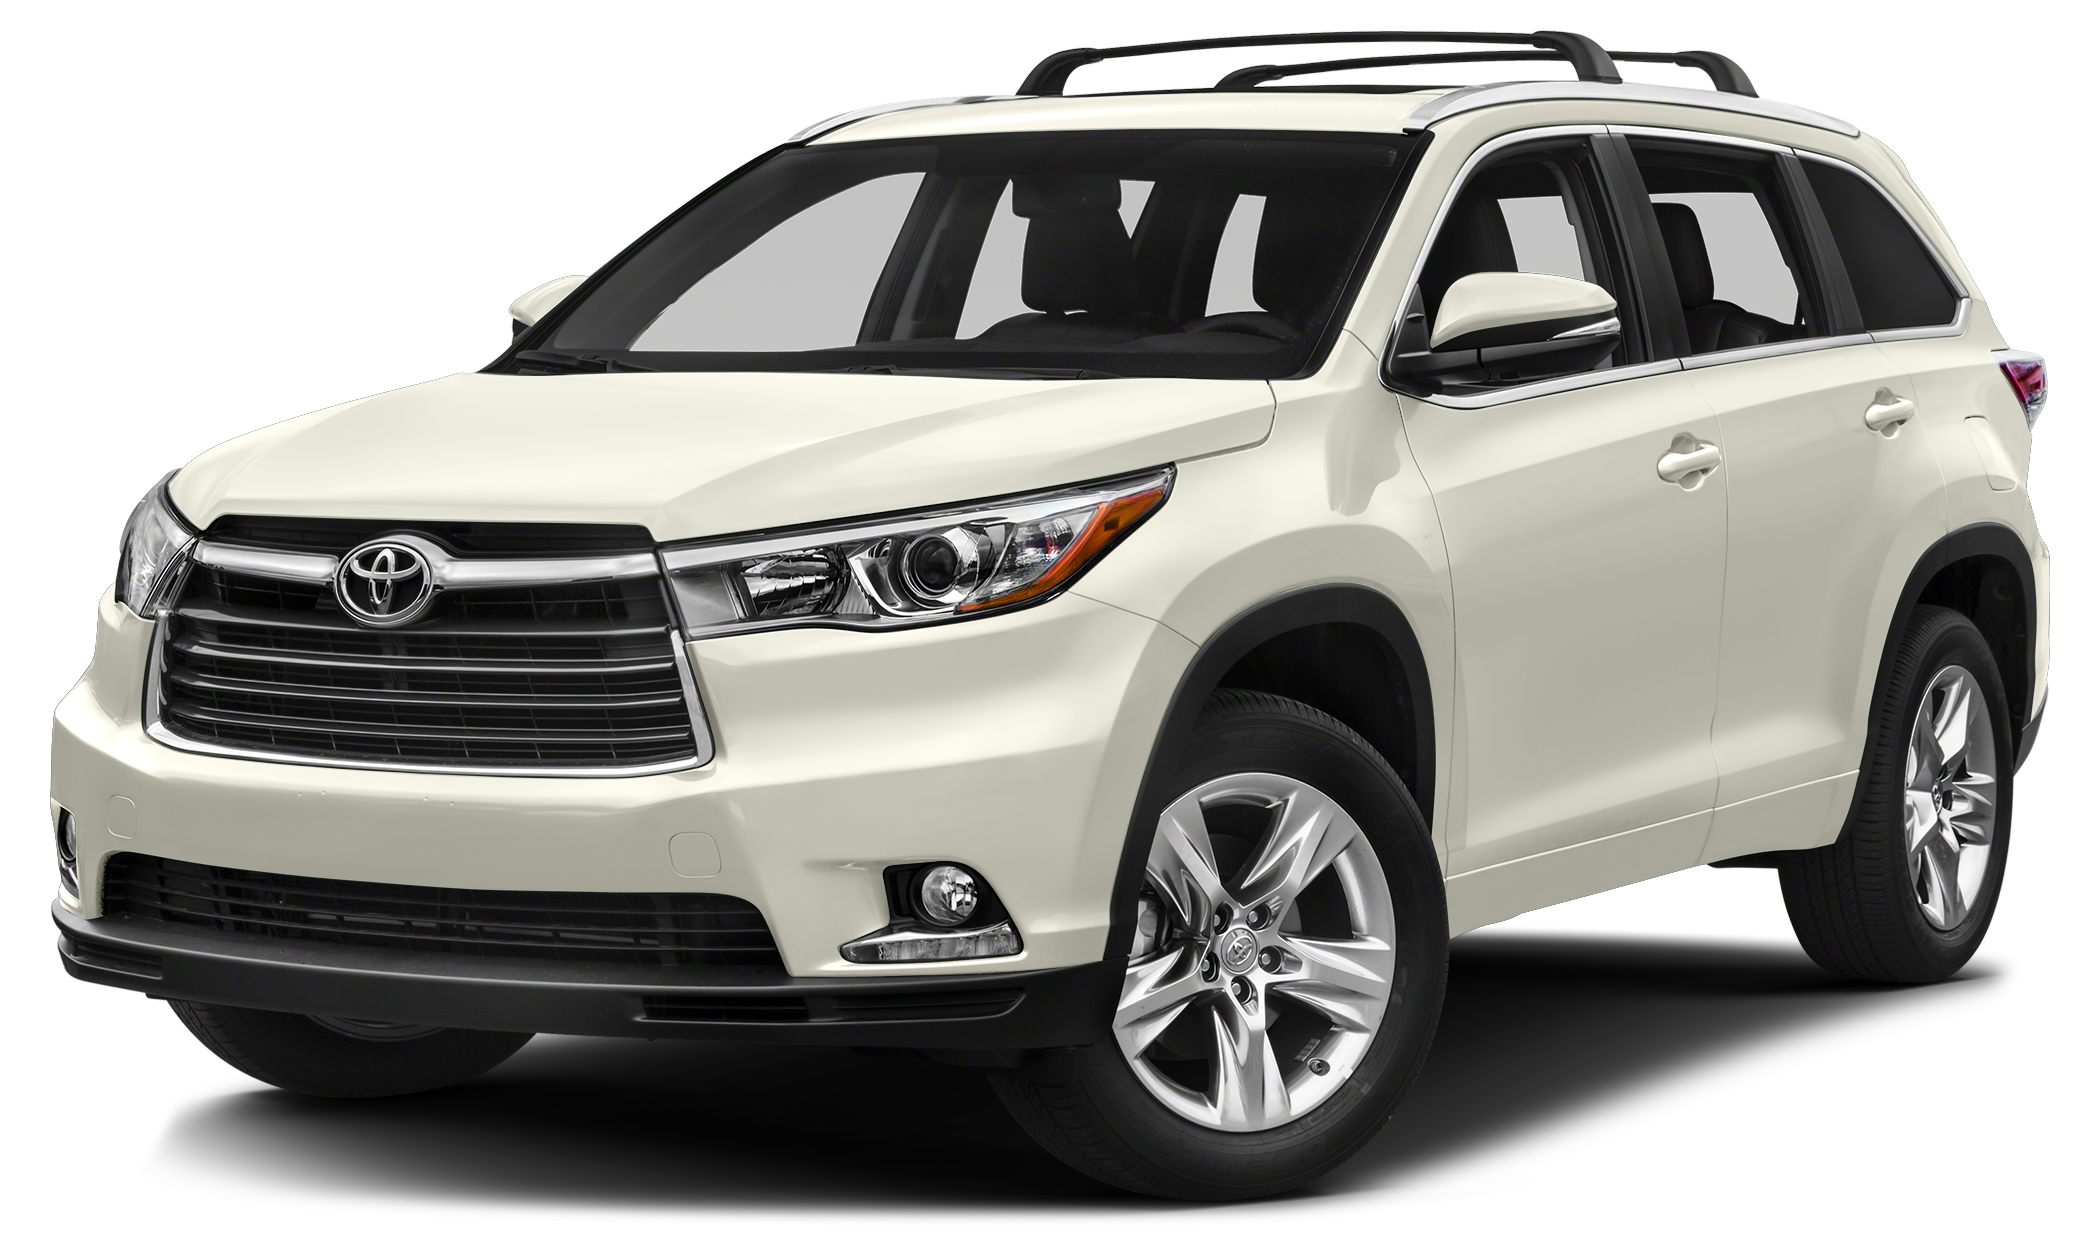 2016 Toyota Highlander Limited Miles 0Color Blizzard Pearl Stock 56403 VIN 5TDYKRFH2GS156403